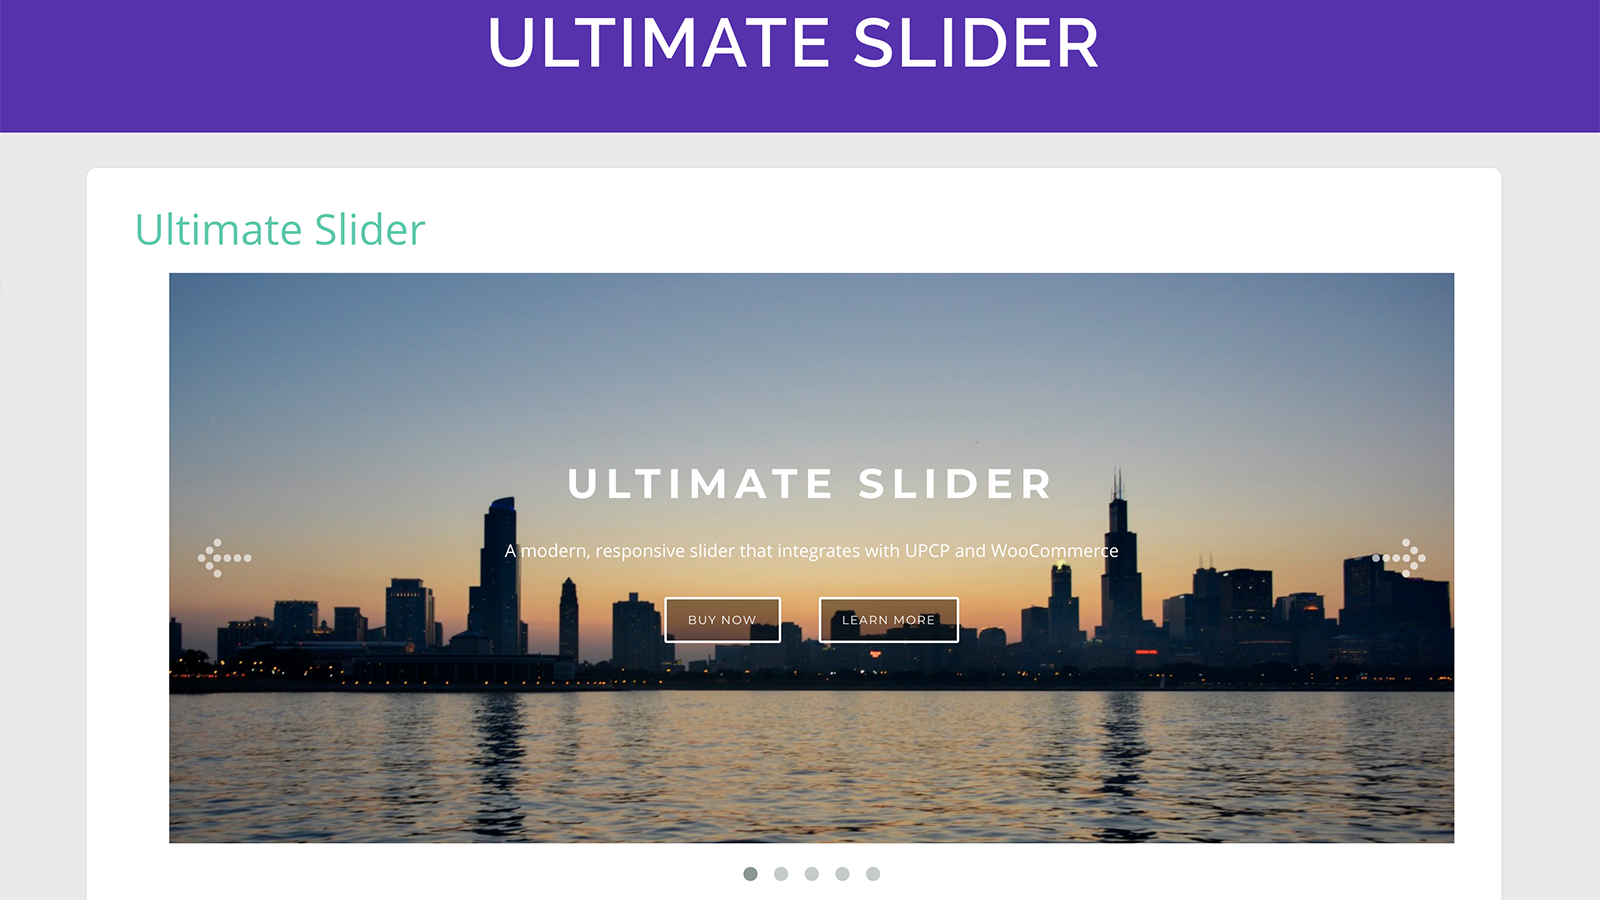 Ultimate Slider